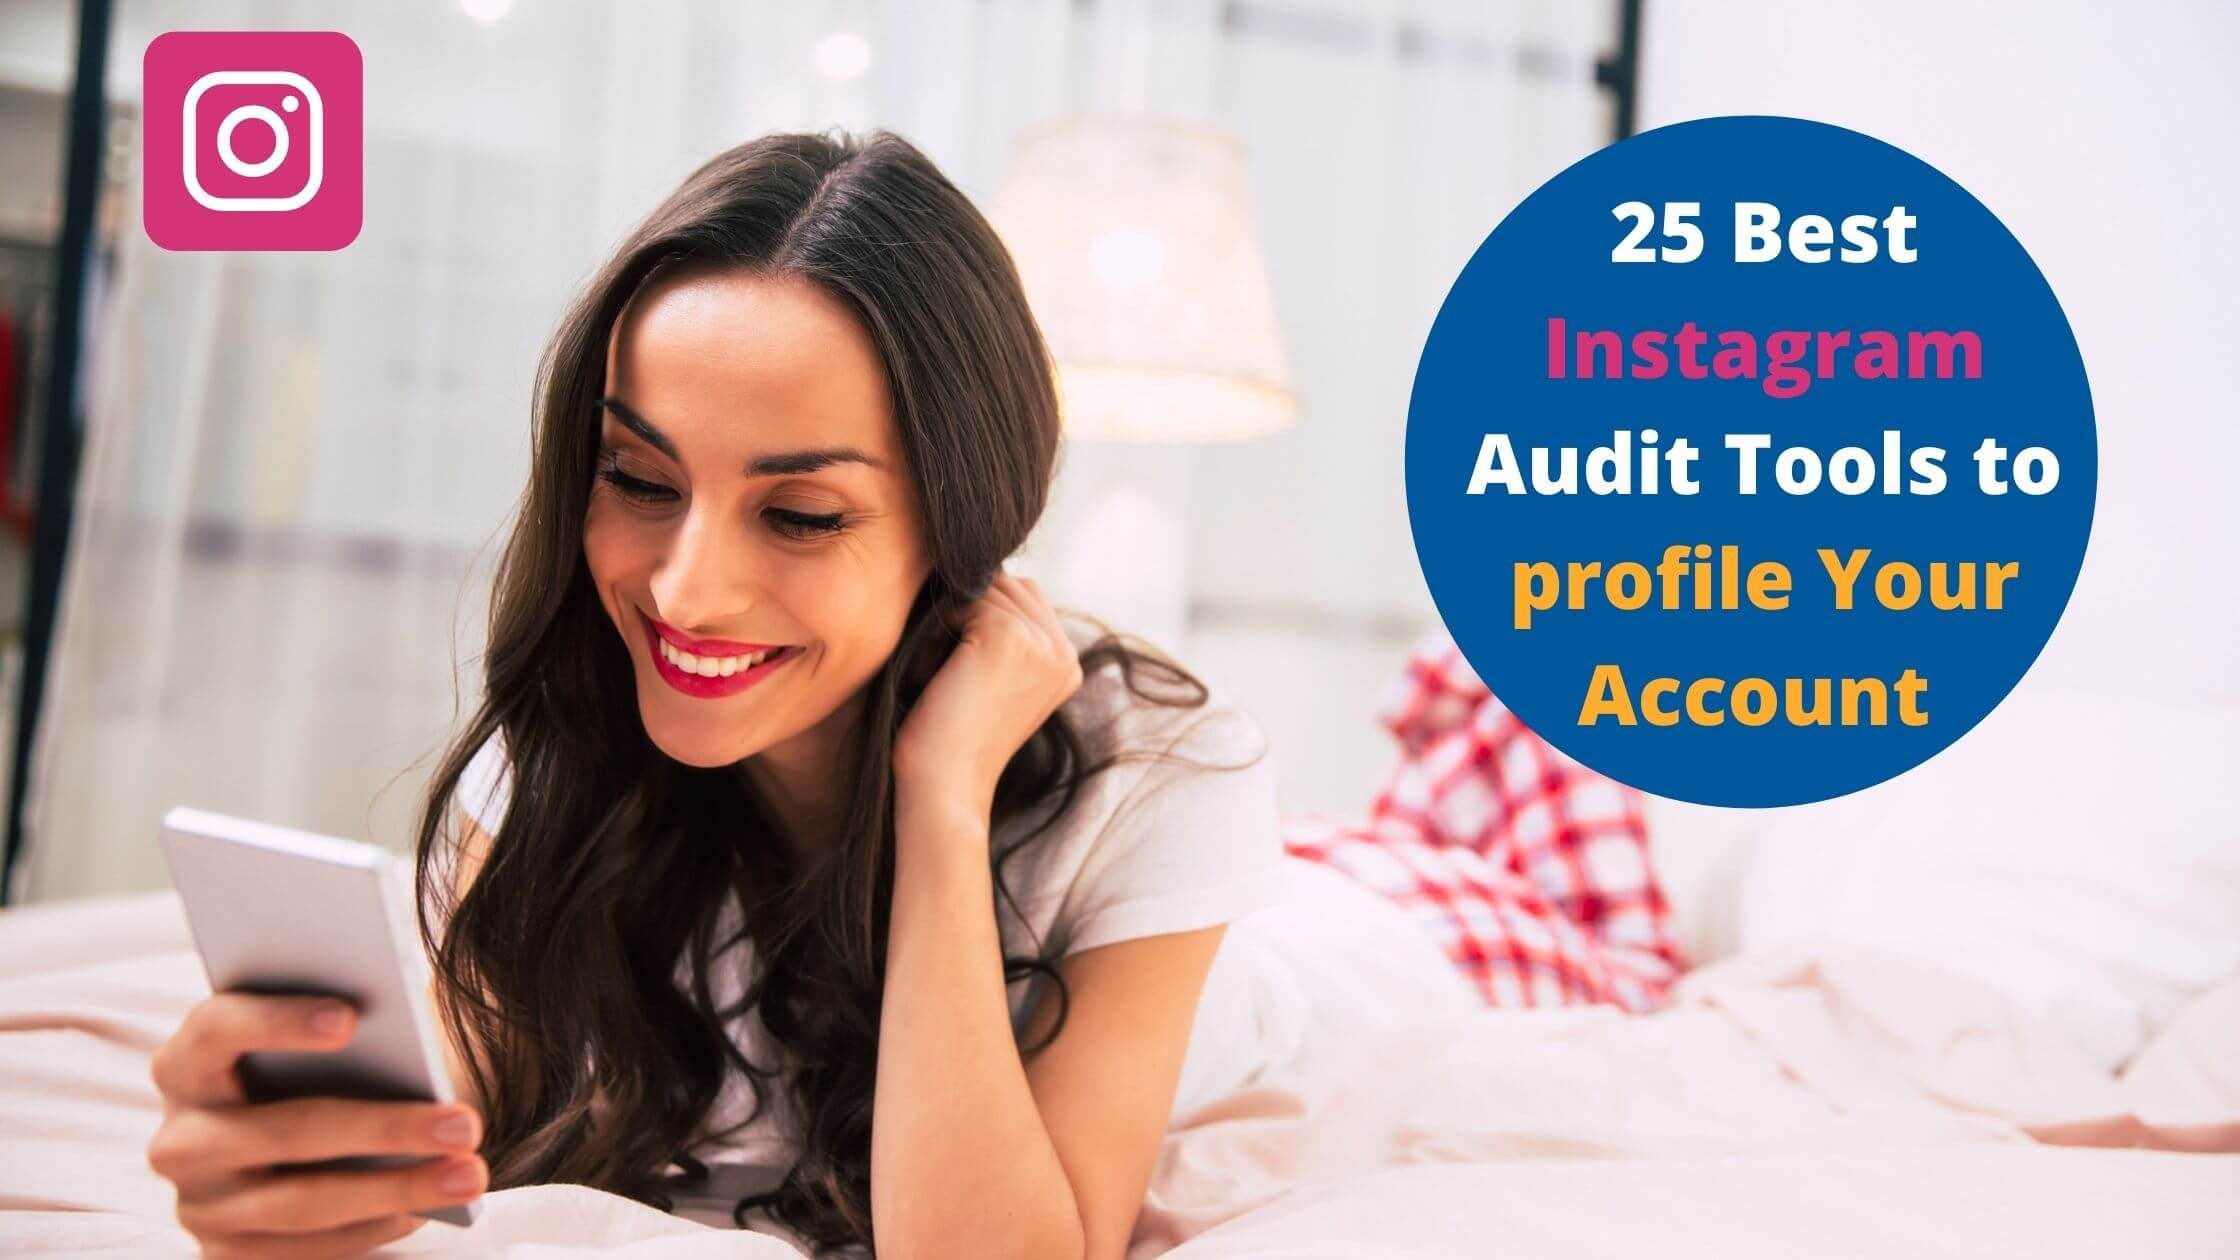 Instagram Audit Tools to profile Your Account